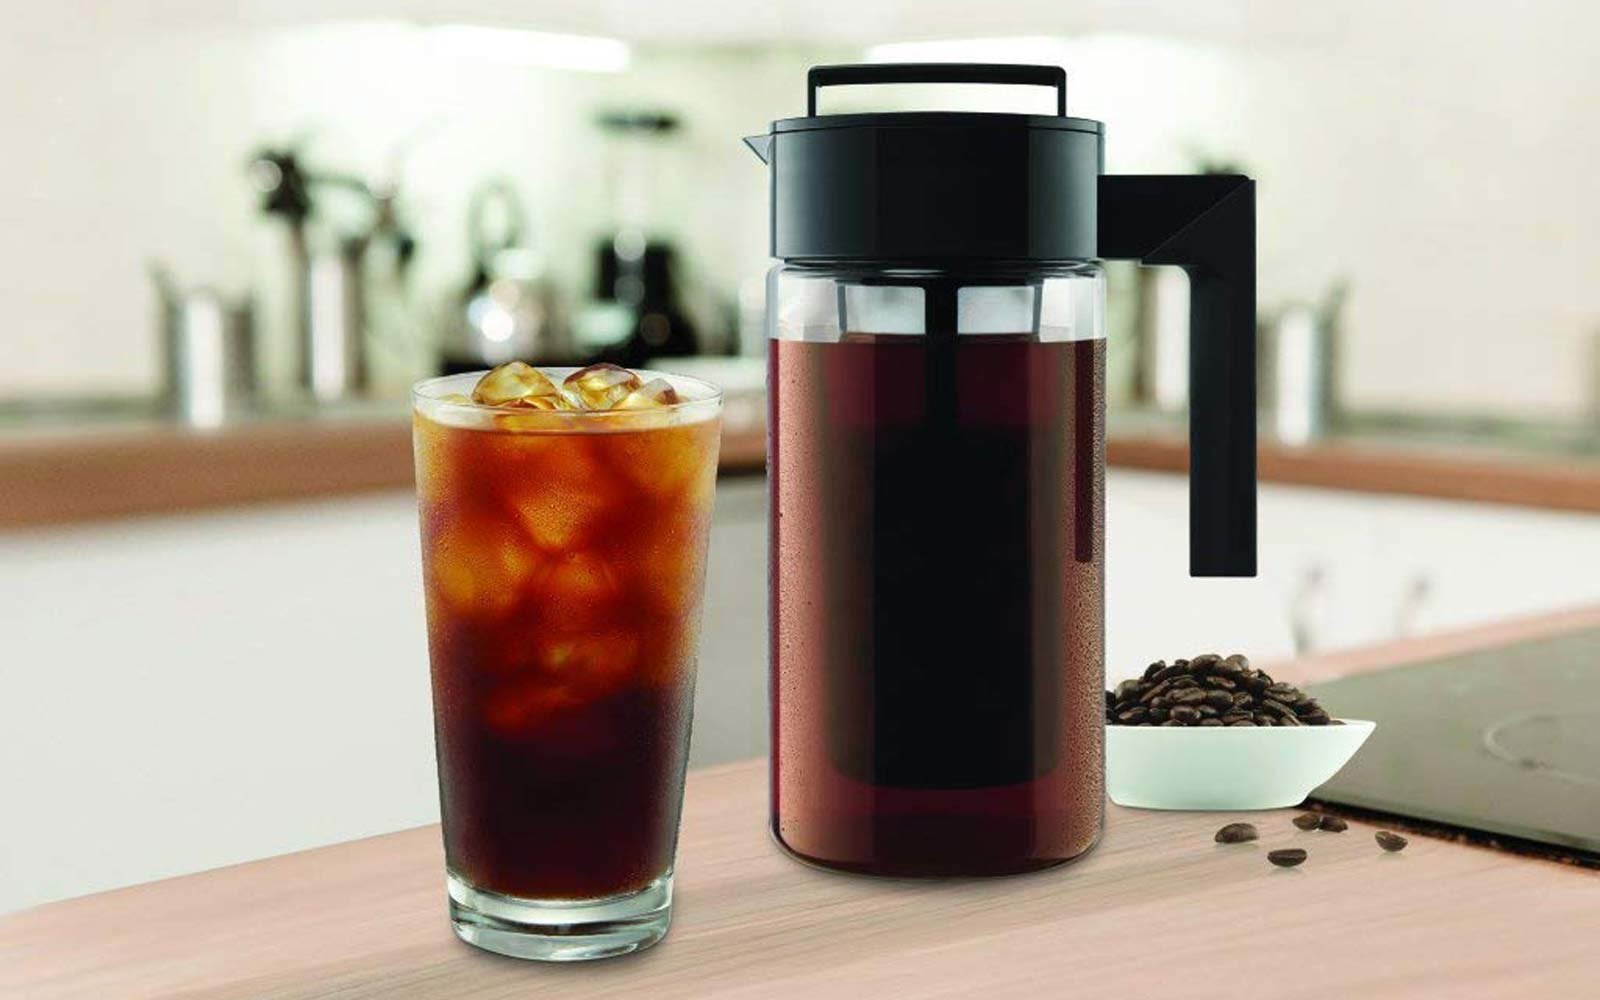 This Cold Brew Coffee Maker Has Over 1,800 5-star Reviews ...